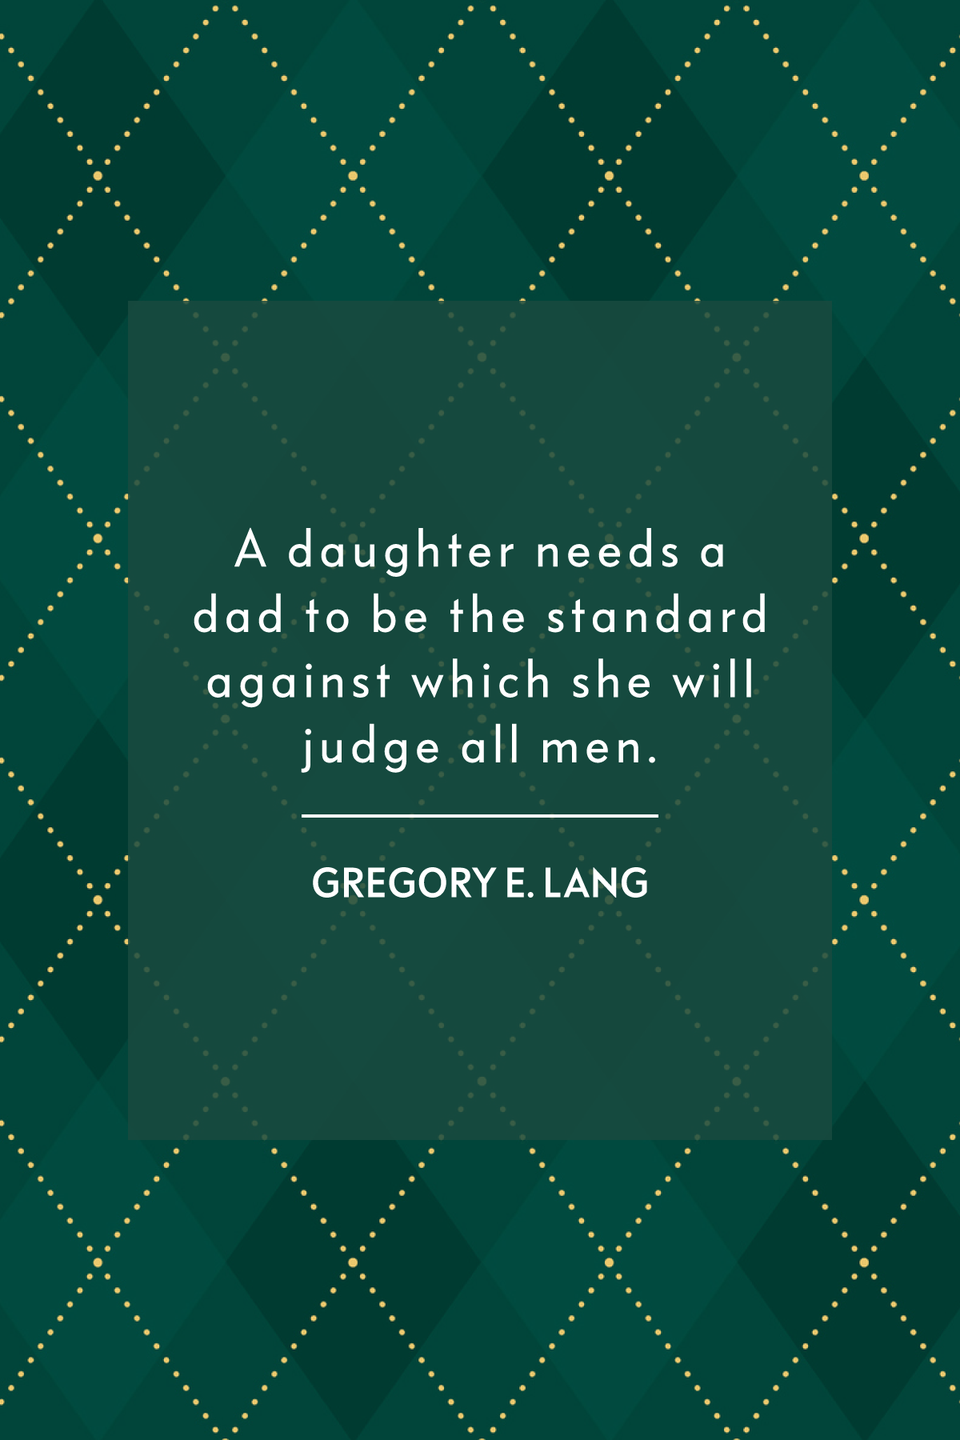 """<p>""""A daughter needs a dad to be the standard against which she will judge all men,"""" the <em>New York Times</em> best-selling author wrote in his book <em><em><a href=""""https://www.amazon.com/Why-Daughter-Needs-Gregory-Lang/dp/1492667838?tag=syn-yahoo-20&ascsubtag=%5Bartid%7C2139.g.32925371%5Bsrc%7Cyahoo-us"""" rel=""""nofollow noopener"""" target=""""_blank"""" data-ylk=""""slk:Why a Daughter Needs a Dad"""" class=""""link rapid-noclick-resp"""">Why a Daughter Needs a Dad</a></em>.</em><em><br></em></p>"""